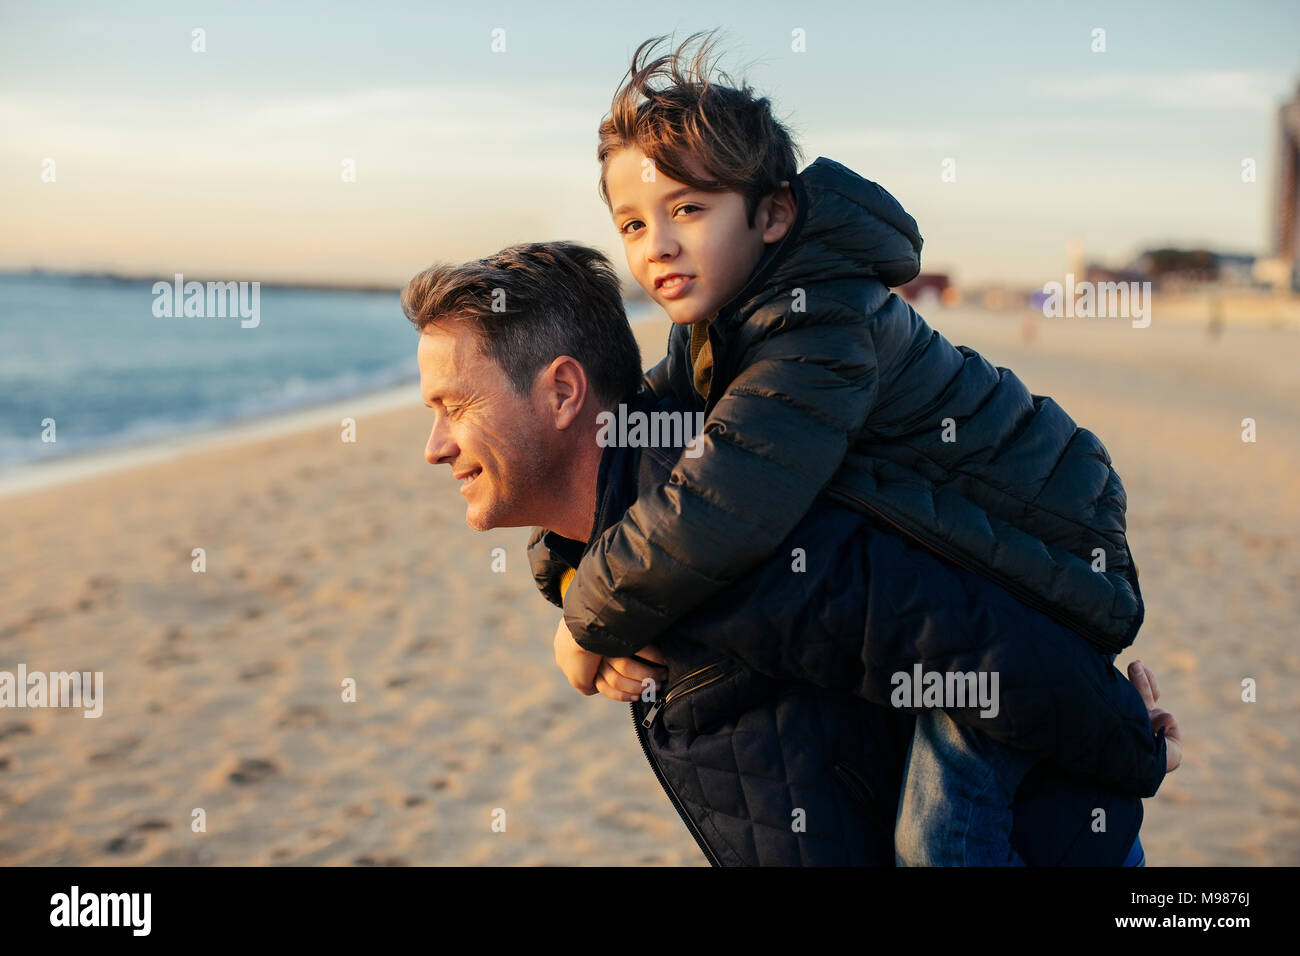 Portrait of father carrying son piggyback on the beach - Stock Image